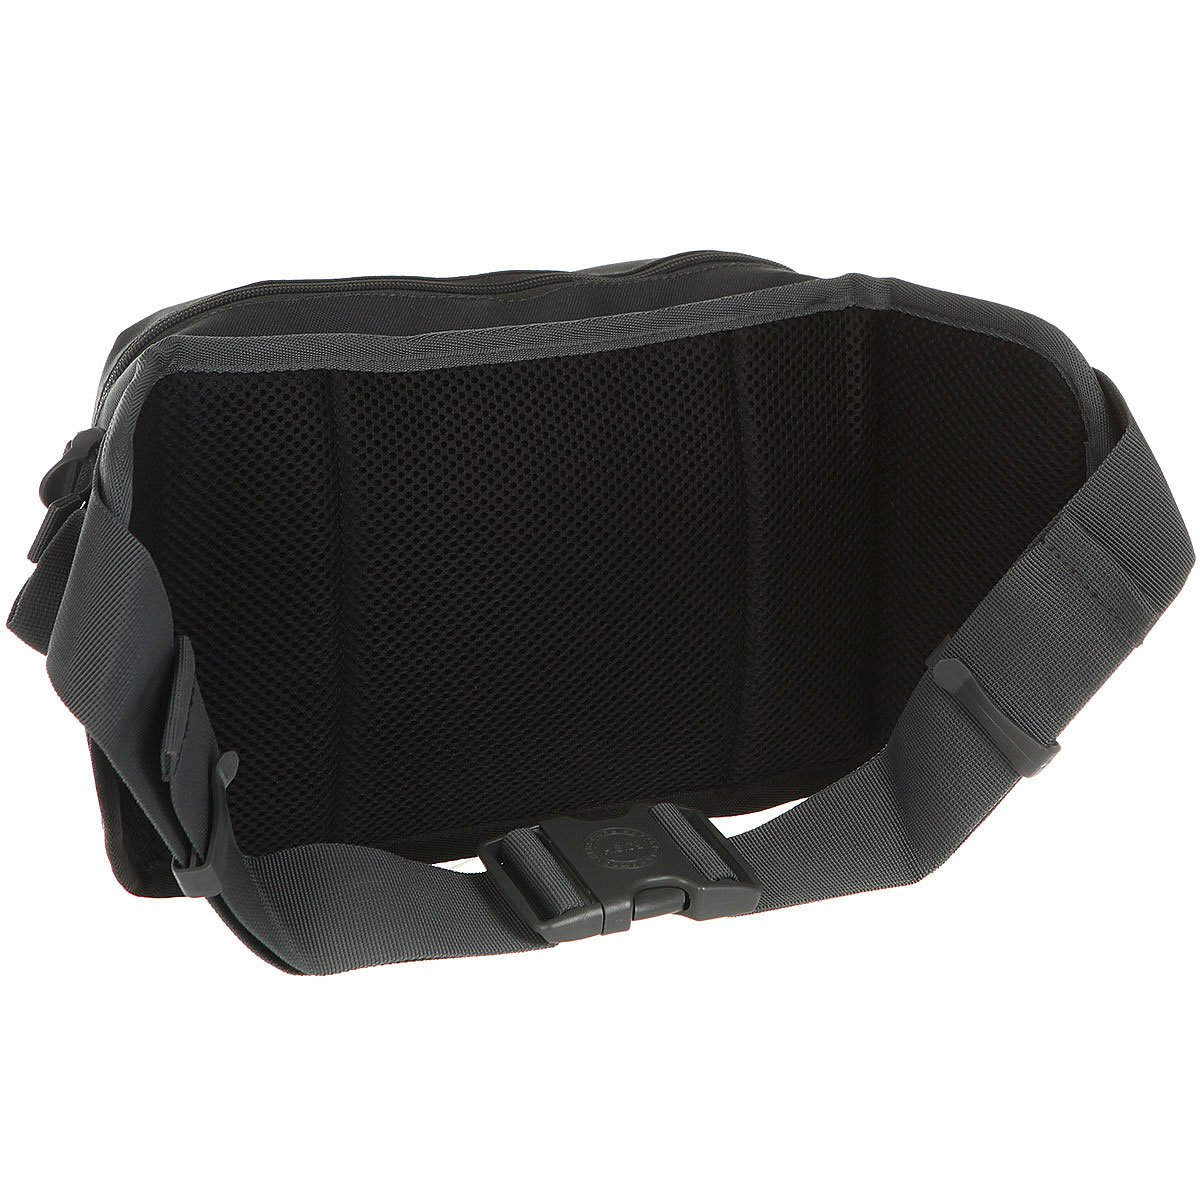 Сумка поясная Herschel Eighteen Black/Dark Shadow